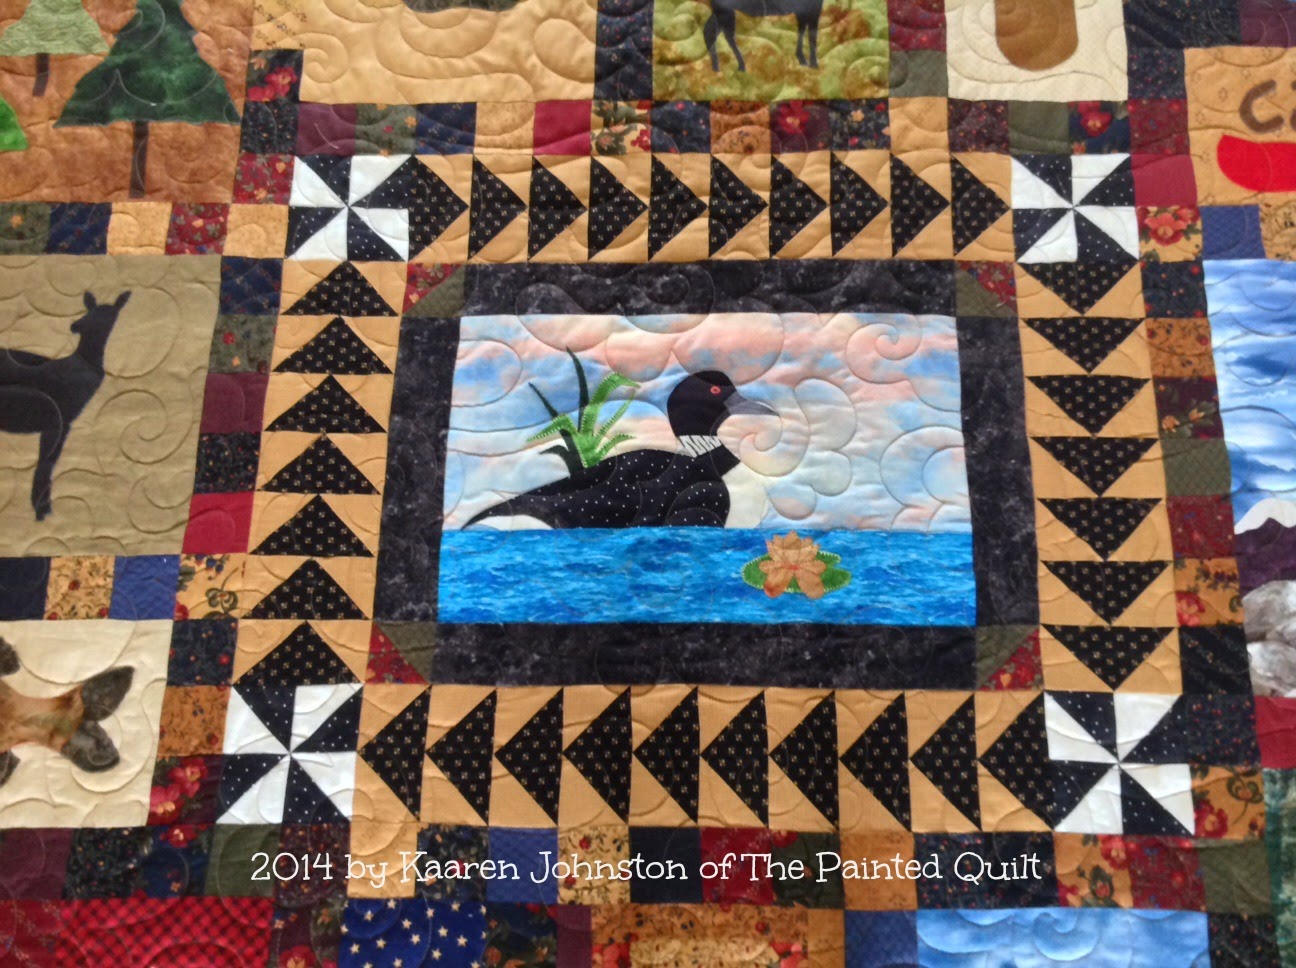 bali pin sarong martin a maureen quilt quilting for from man quilts